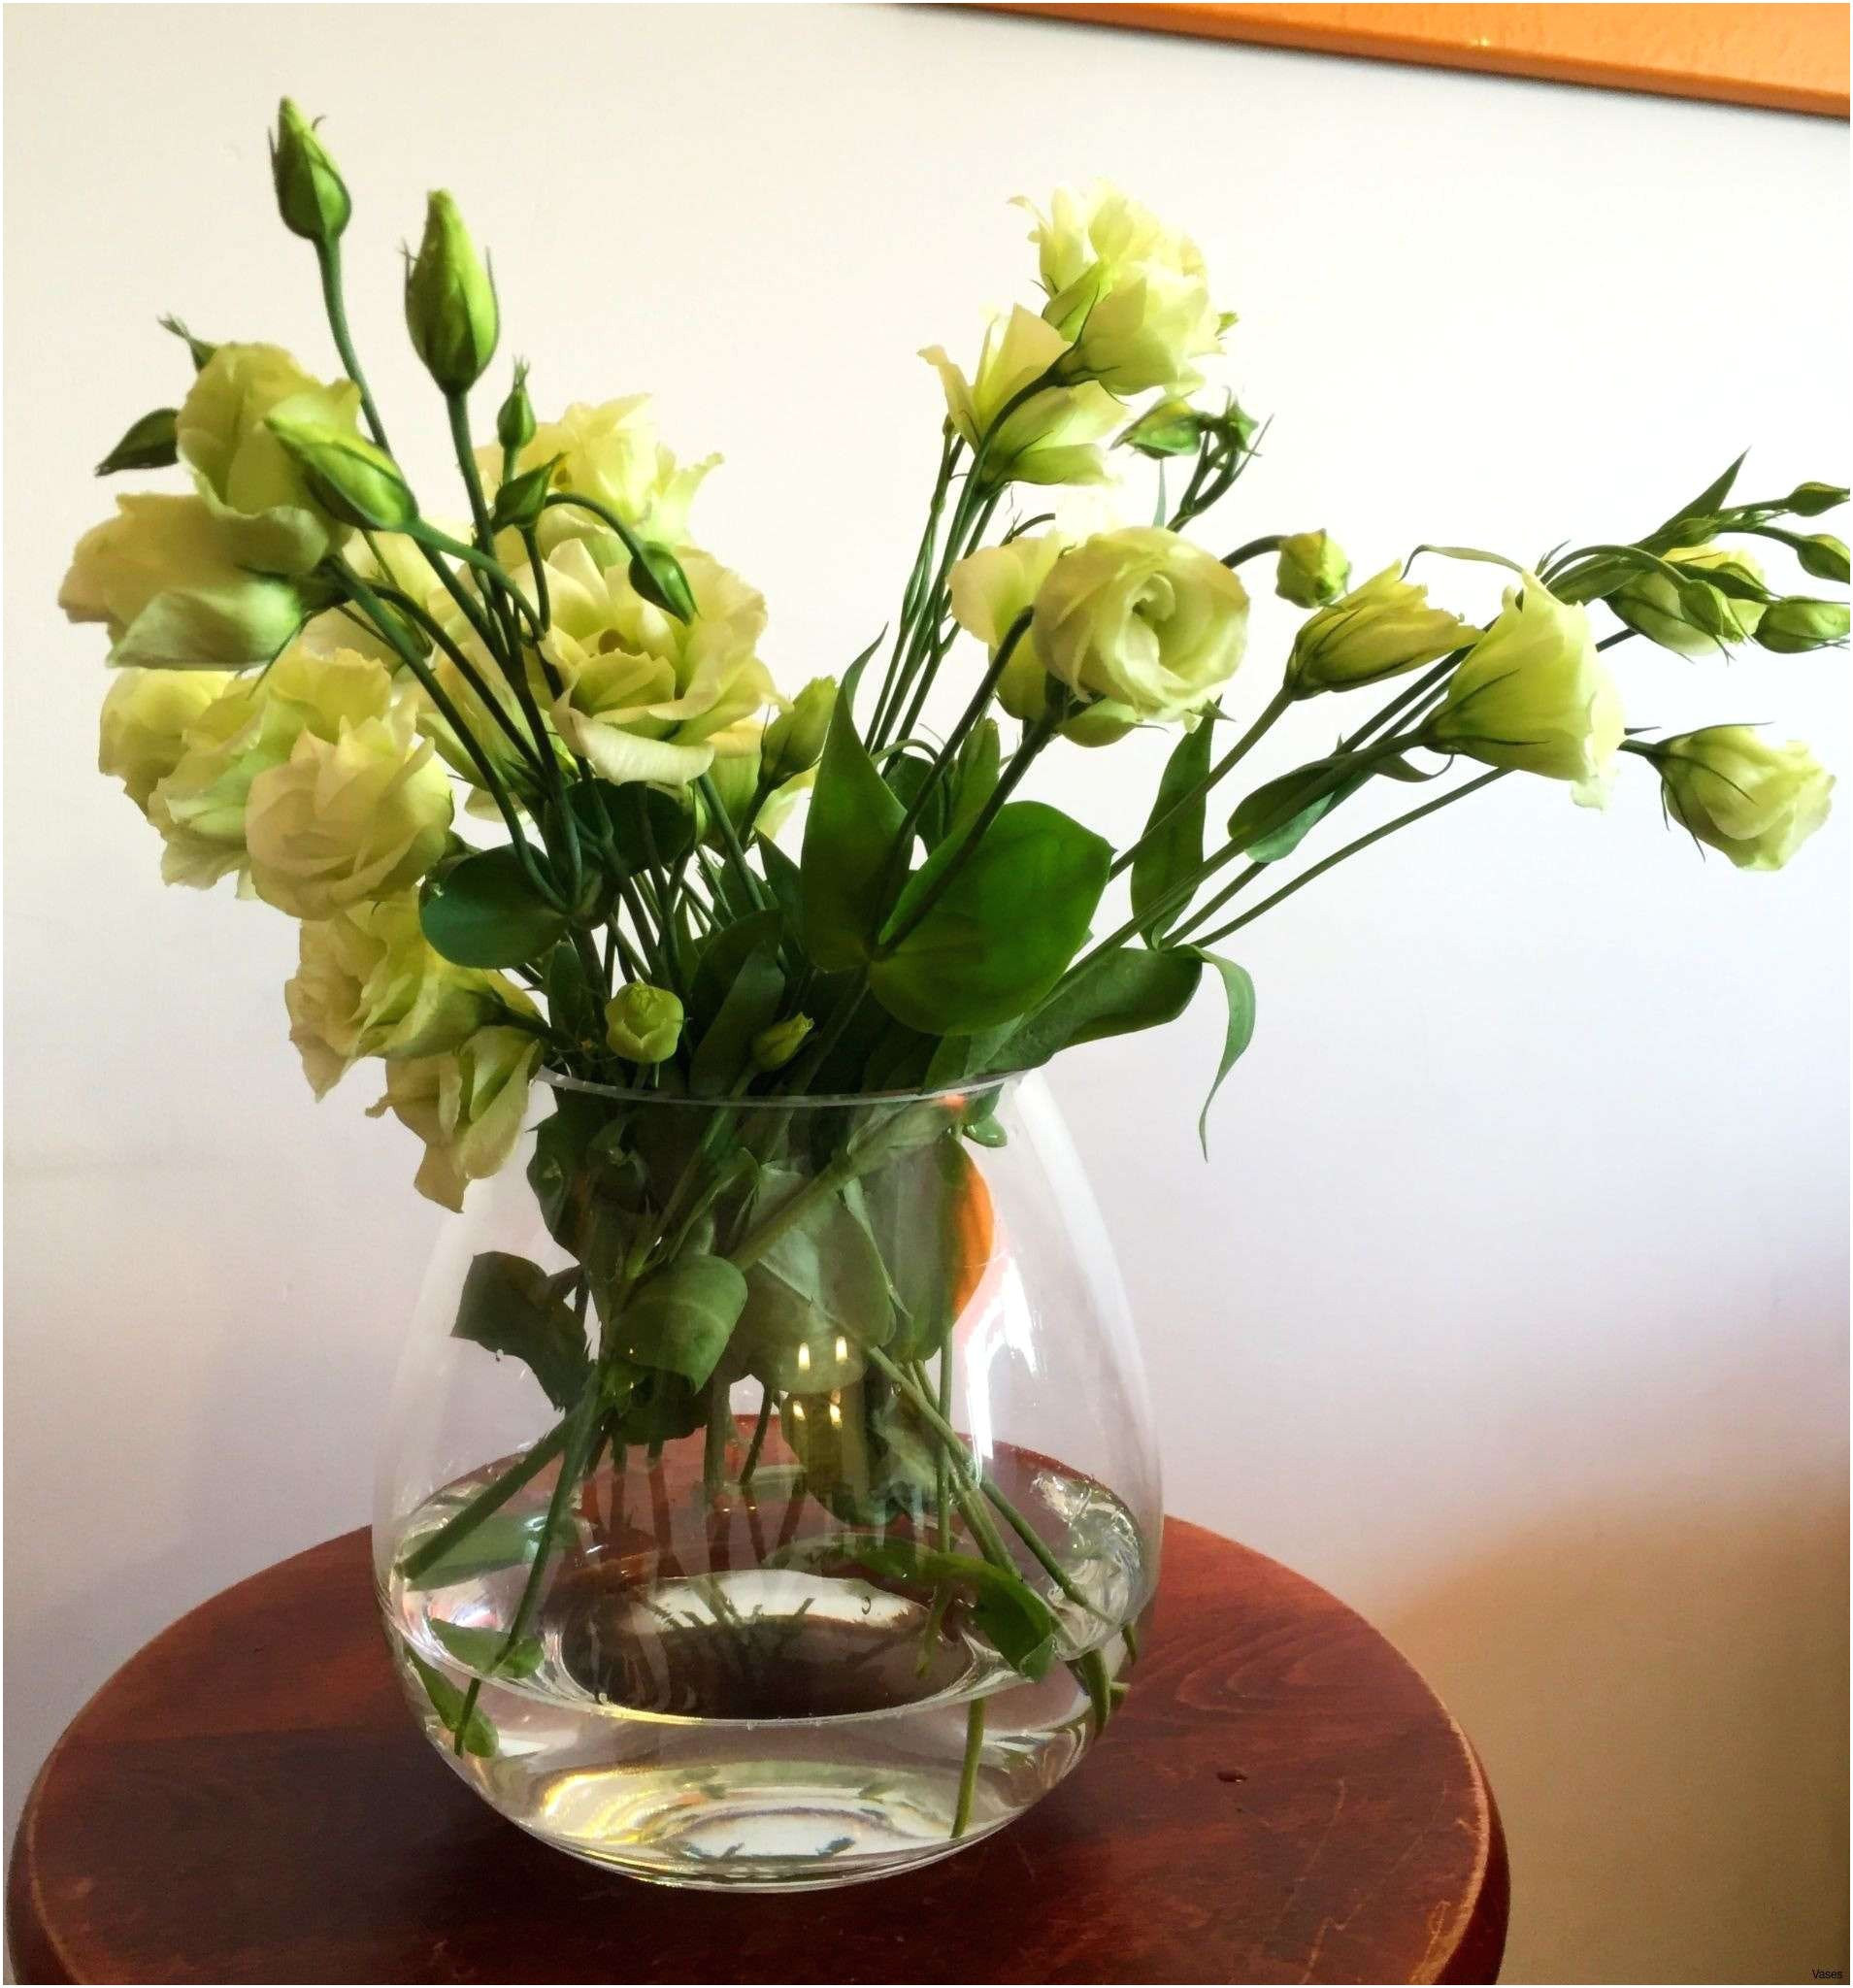 tall brown glass vase of tall green glass vase collection wedding flowers vase fresh tall throughout tall green glass vase image tiger height awful flower vase table 04h vases tablei 0d clipart